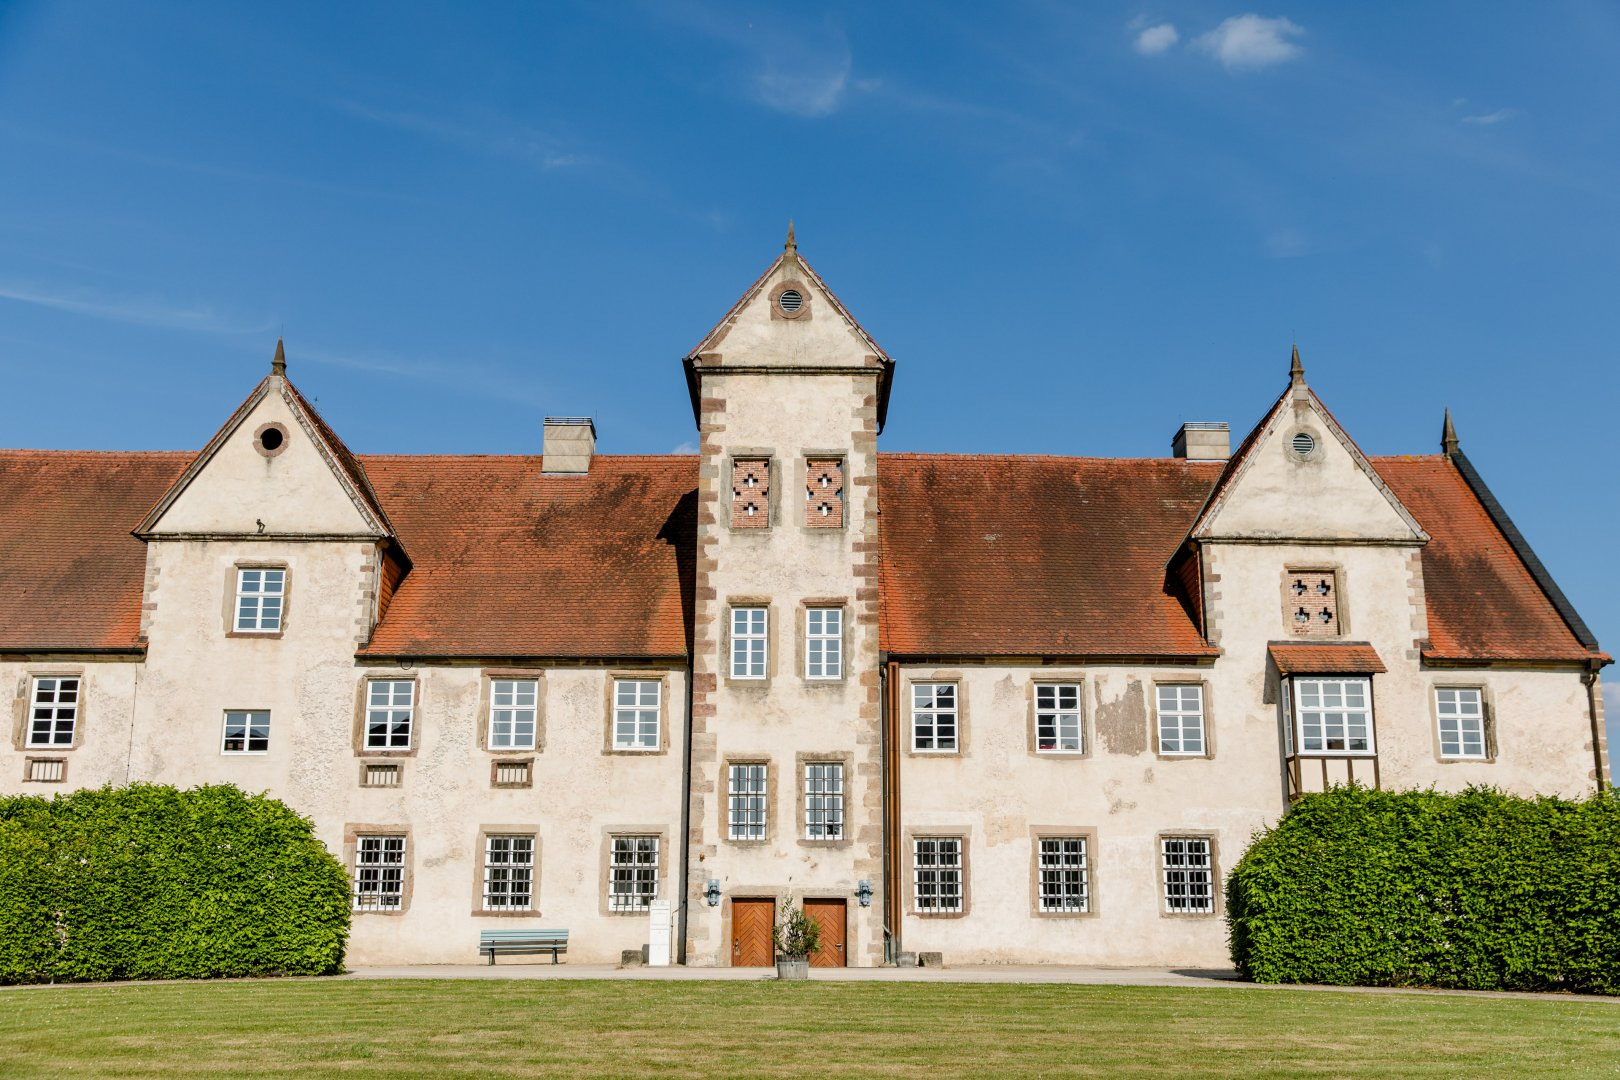 Property Building Estate Home House Château Manor house Architecture Real estate Mansion Facade Sky Roof Historic house Grass Tree Stately home Residential area Lawn Window Villa Turret Almshouse